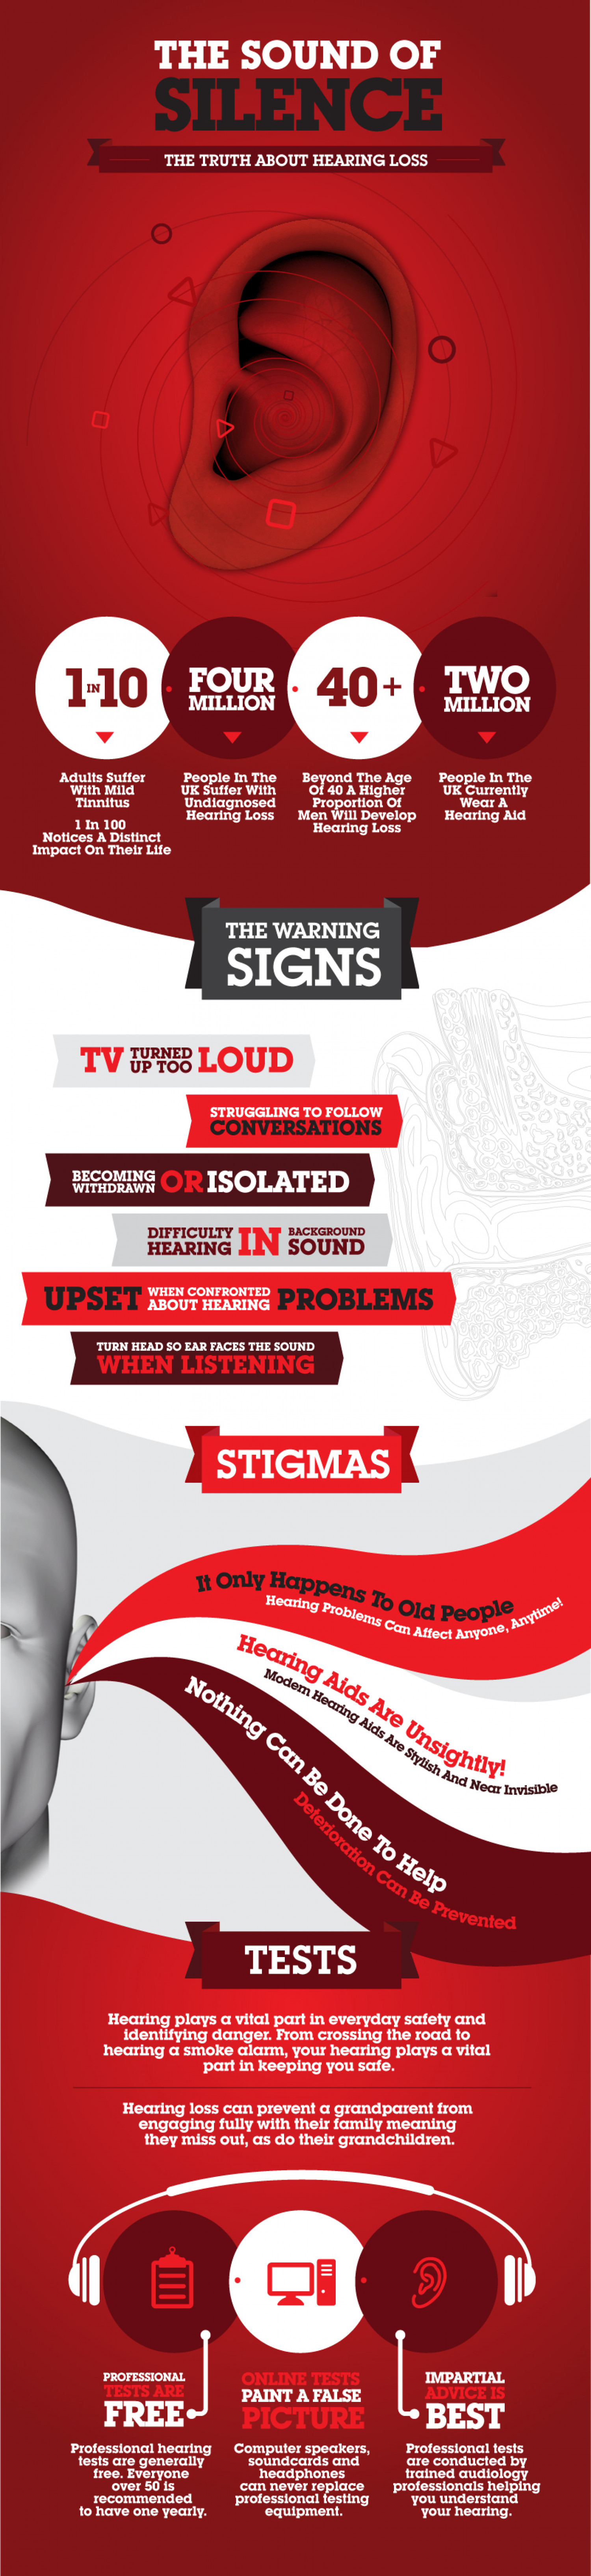 Amplifon - The Sound of Silence Infographic